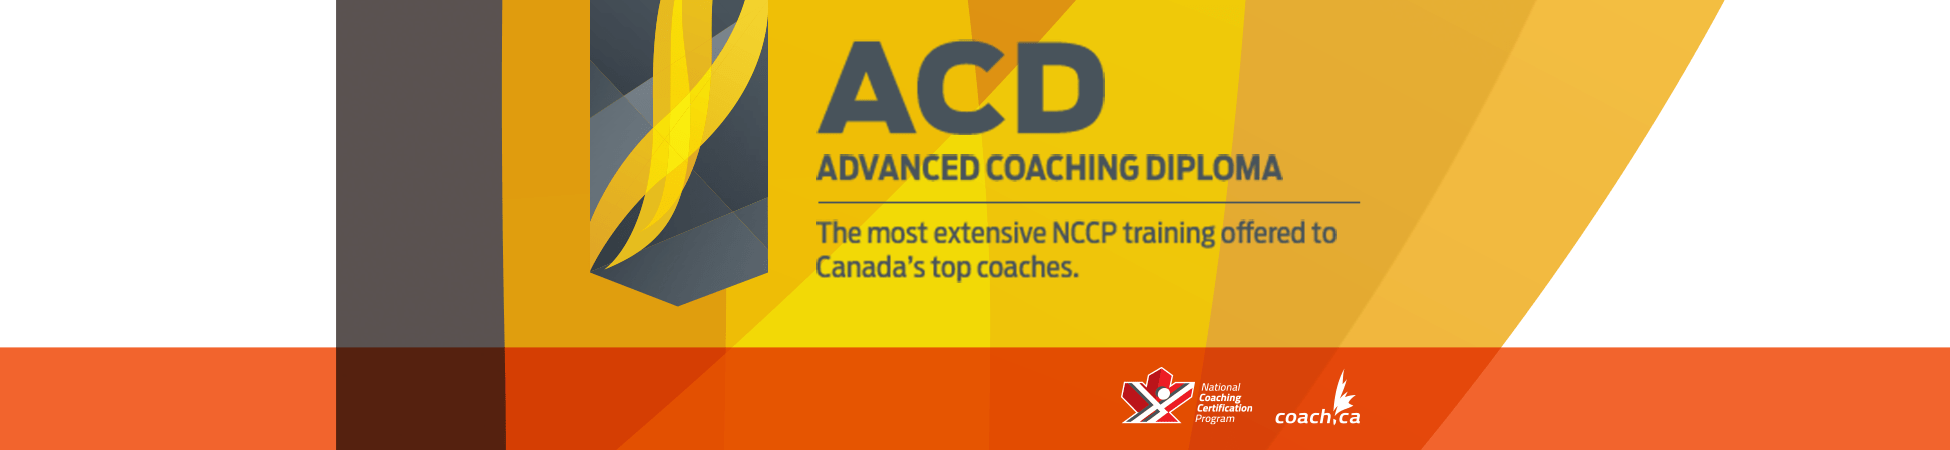 Advanced Coaching Diploma